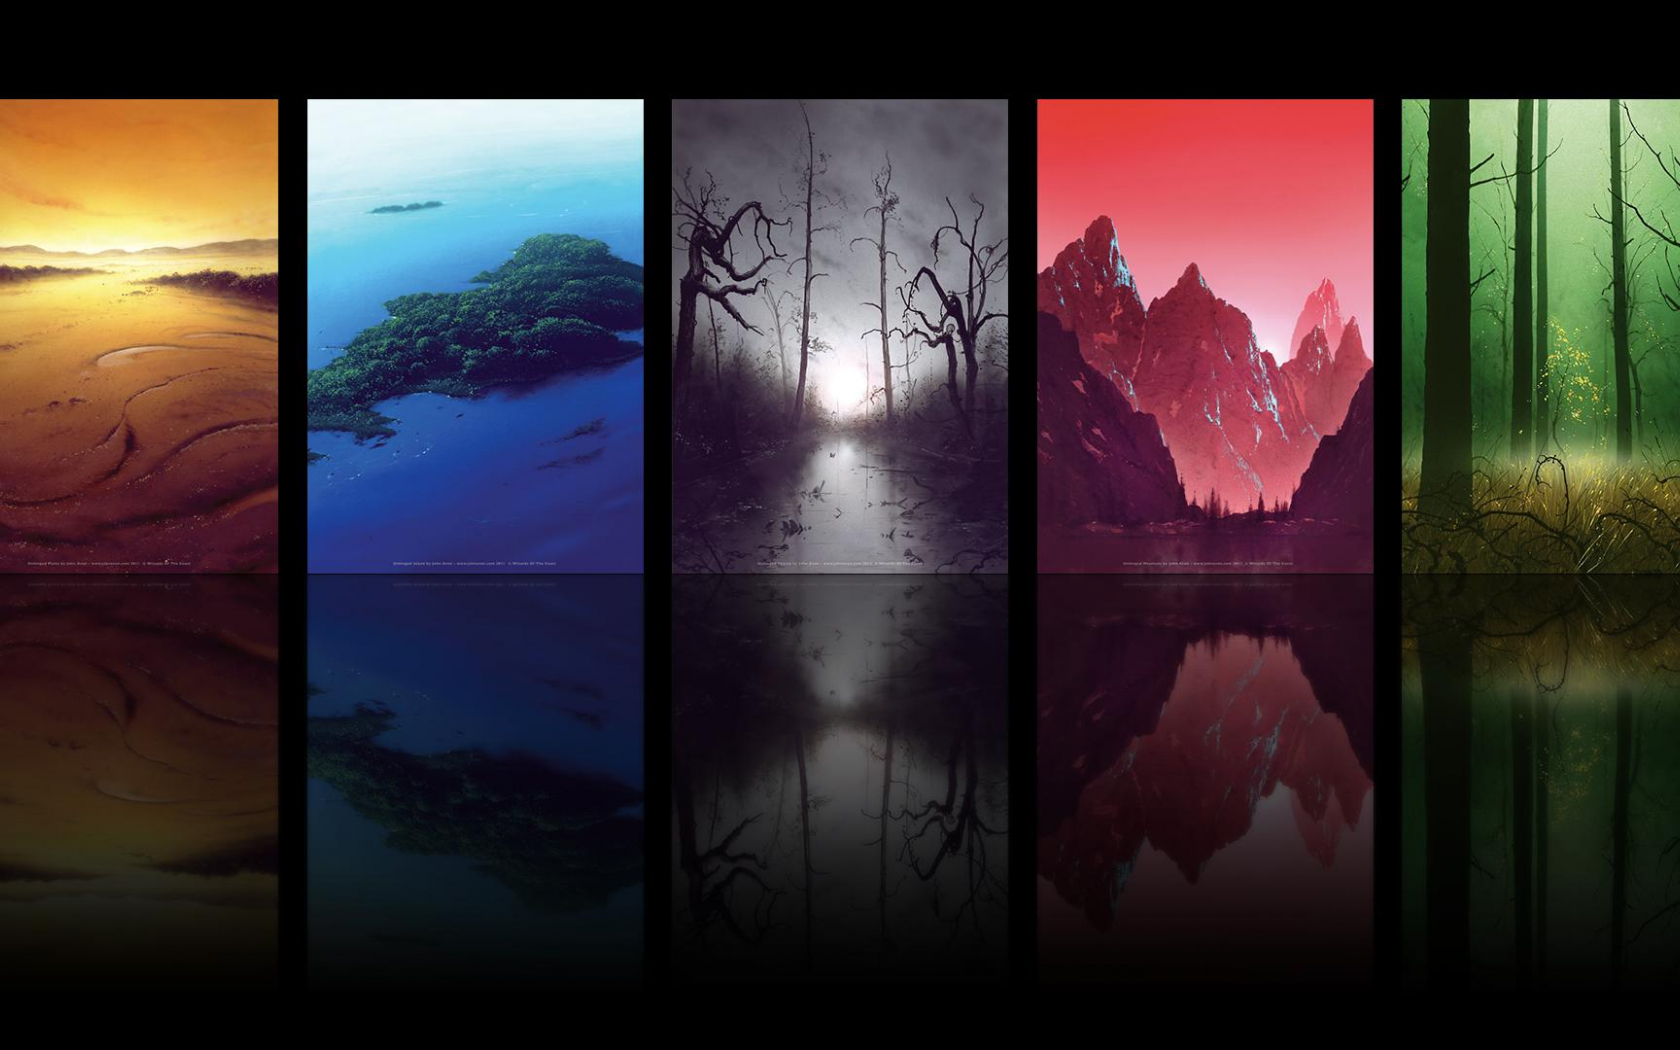 Free Download Mtg Land Wallpaper Couple Quick Wallpapers I 1920x1080 For Your Desktop Mobile Tablet Explore 48 Mtg Land Wallpaper Mtg Phone Wallpaper Mtg Wallpaper Of The Week Magic